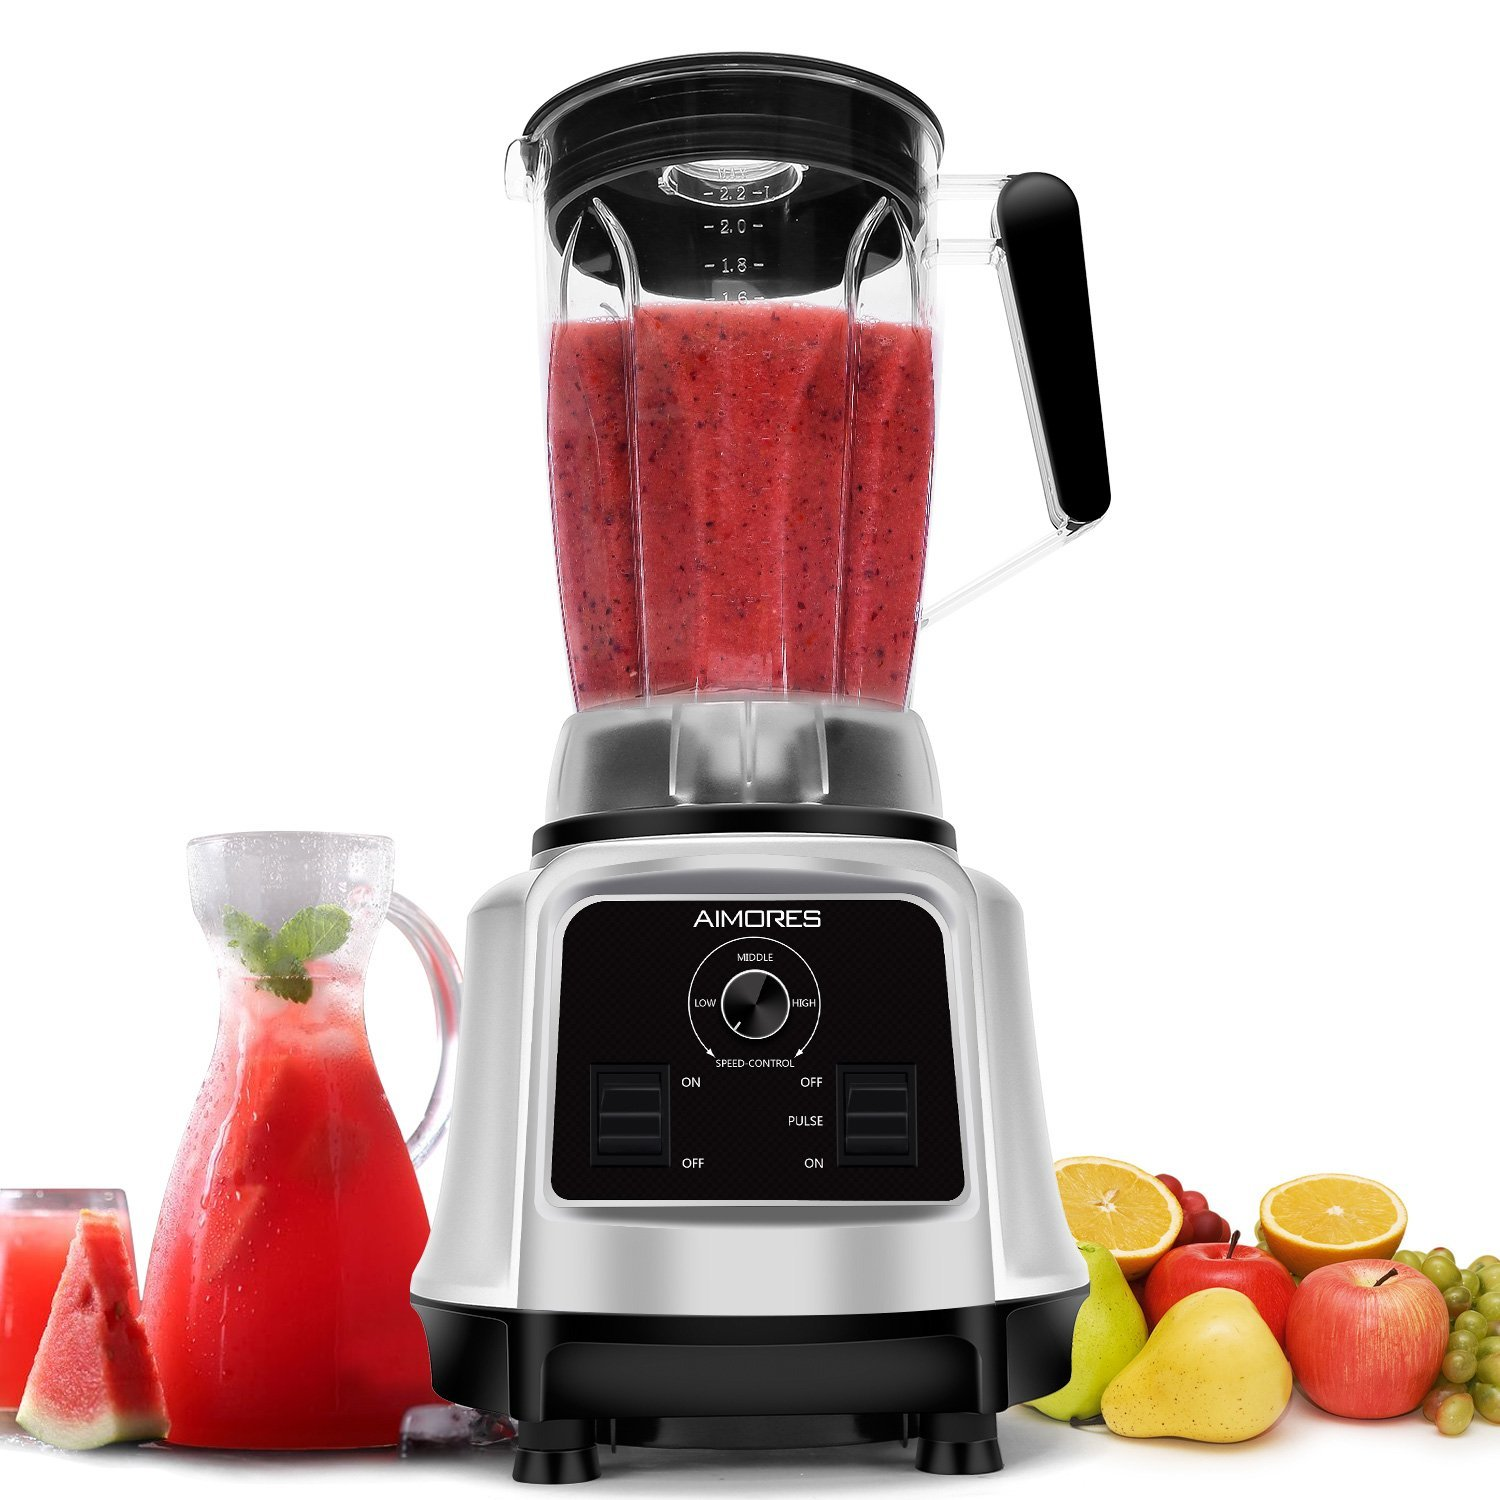 AIMORES 970 Commercial Blender